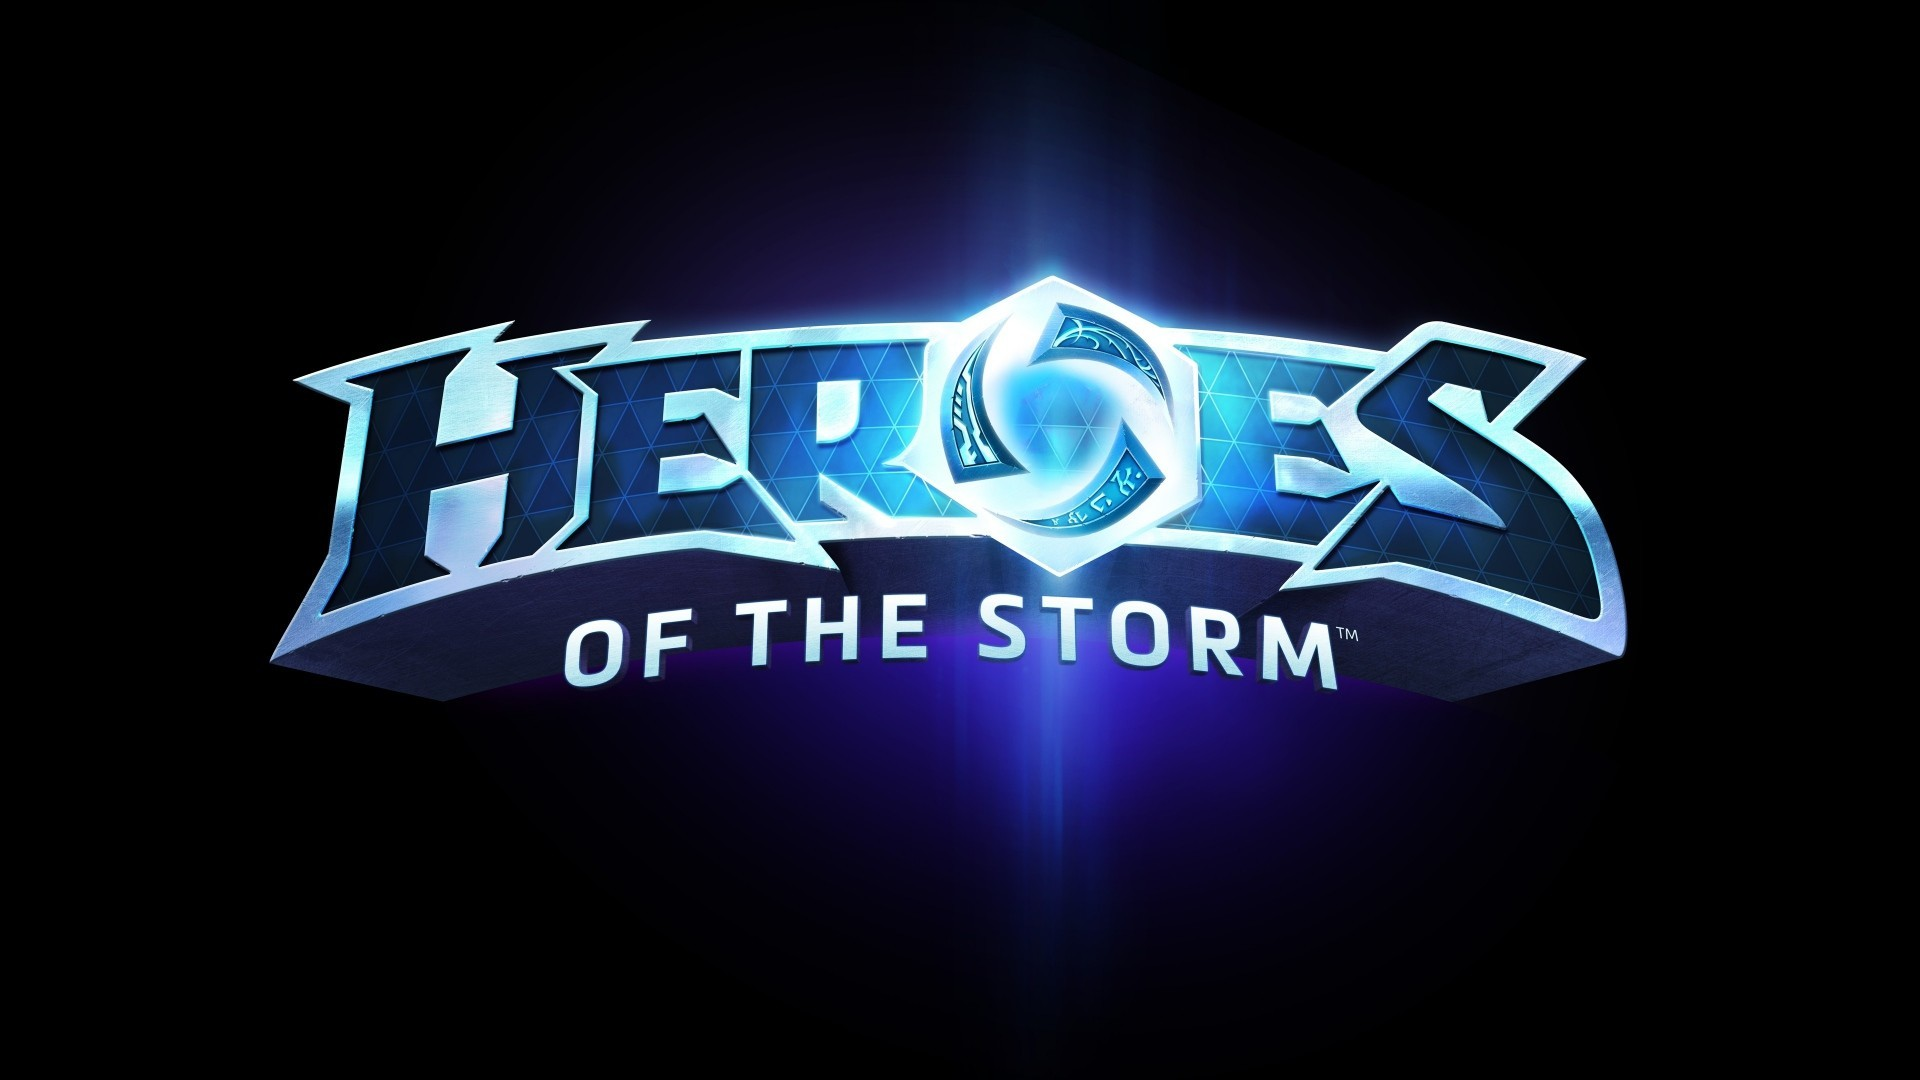 Res: 1920x1080,   Wallpaper heroes of the storm, blizzard entertainment,  blue, logo